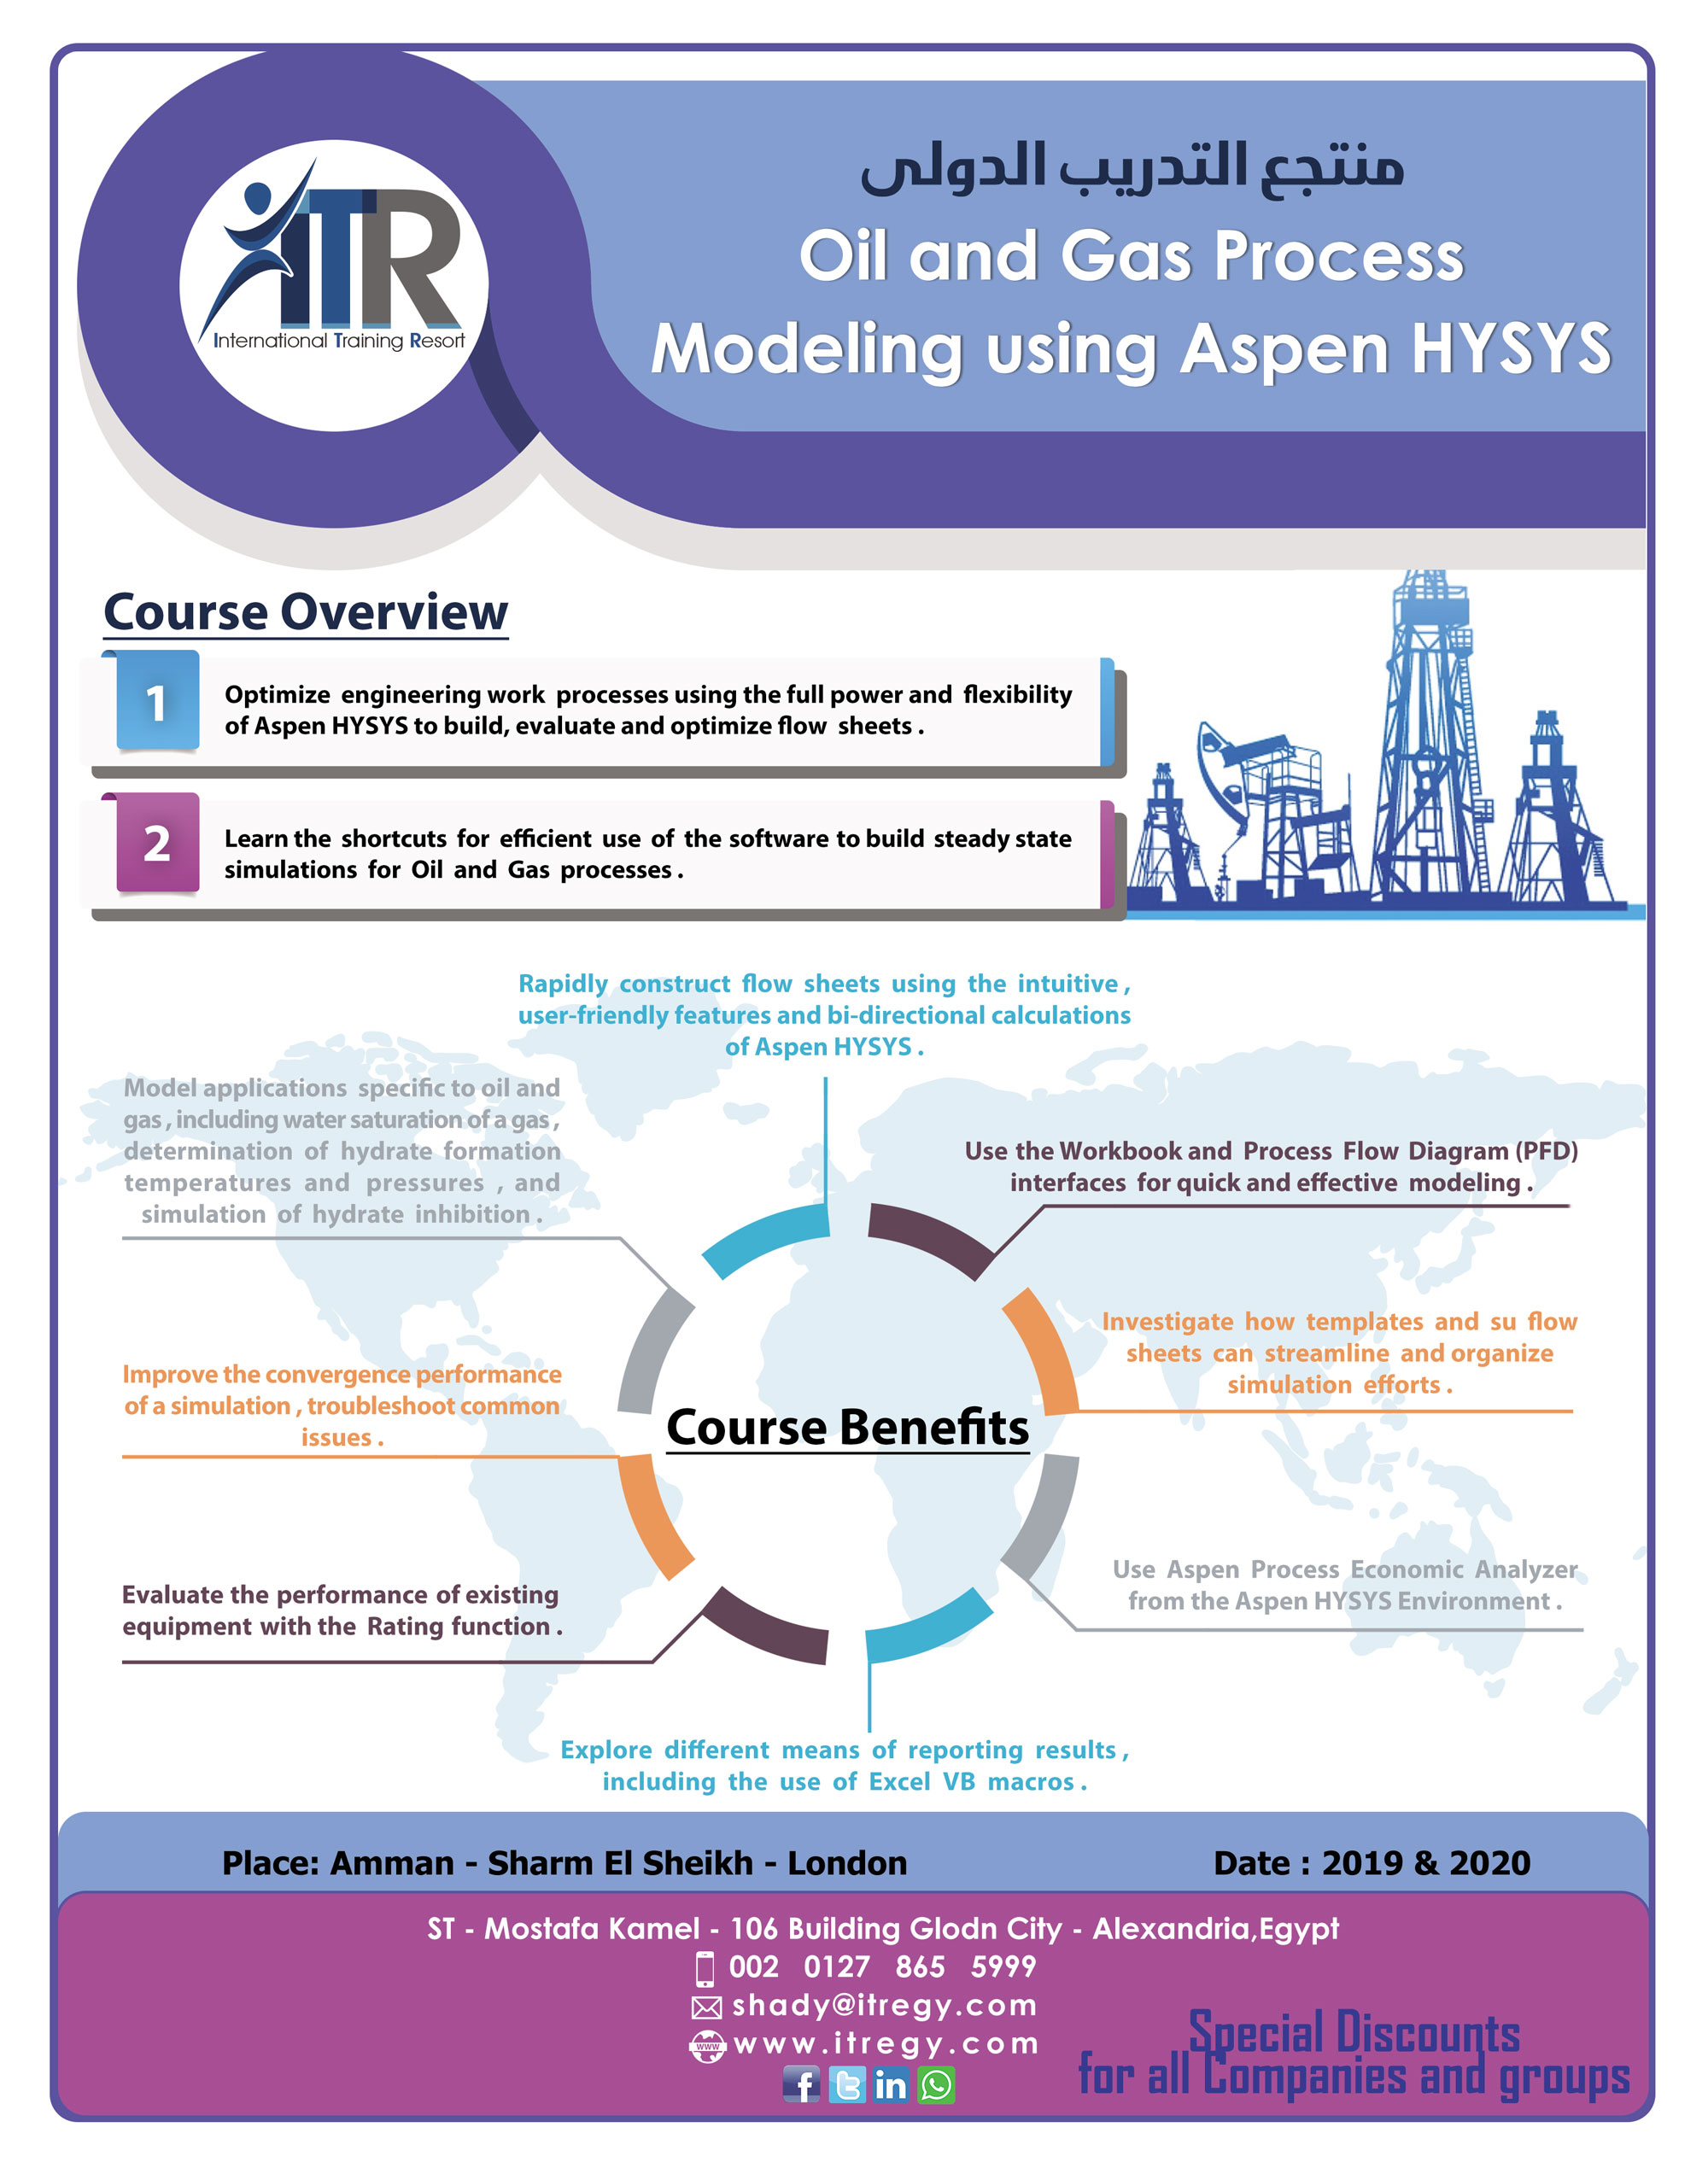 oil and gas process modeling using aspen hysys